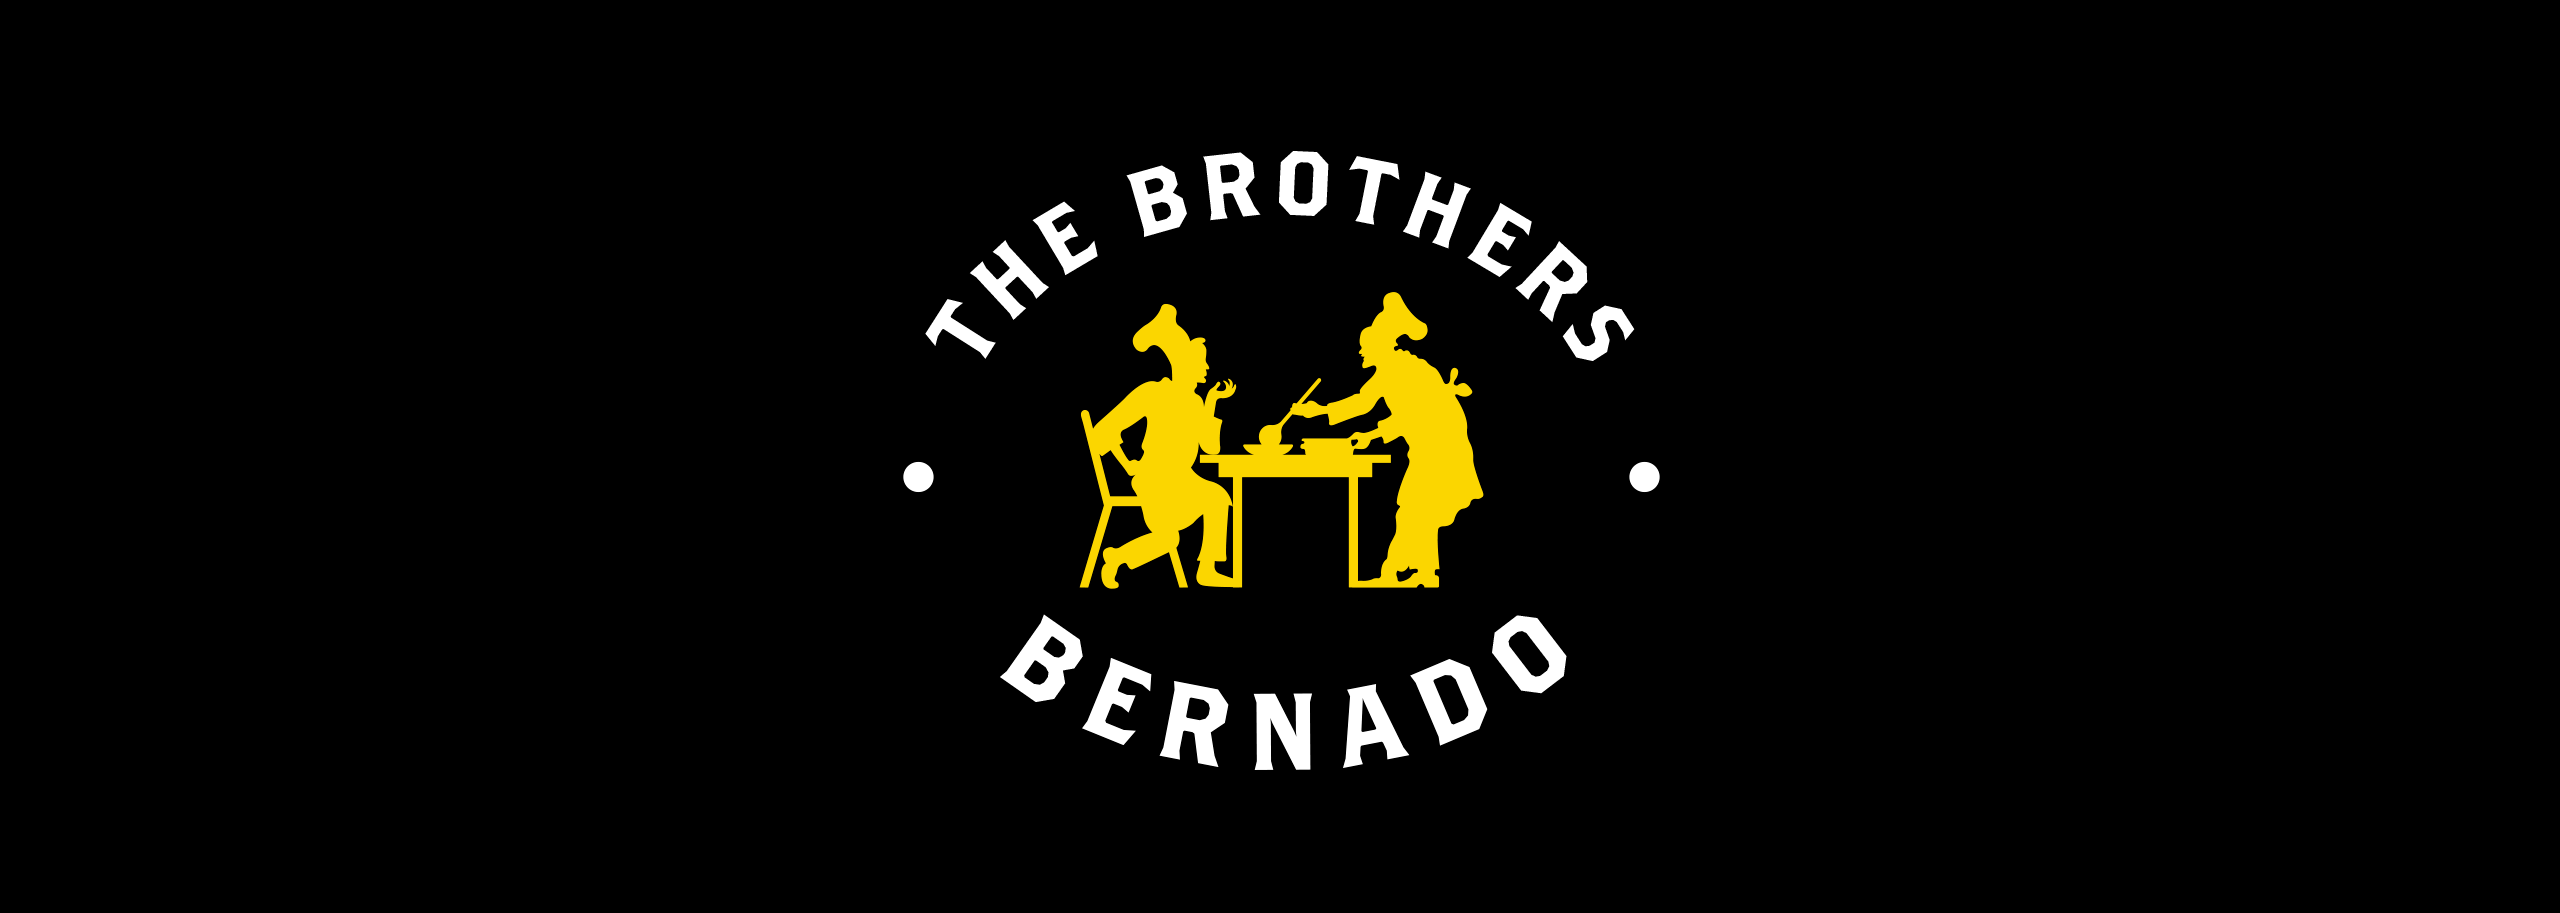 The Brothers Bernado Pasta Packaging-1